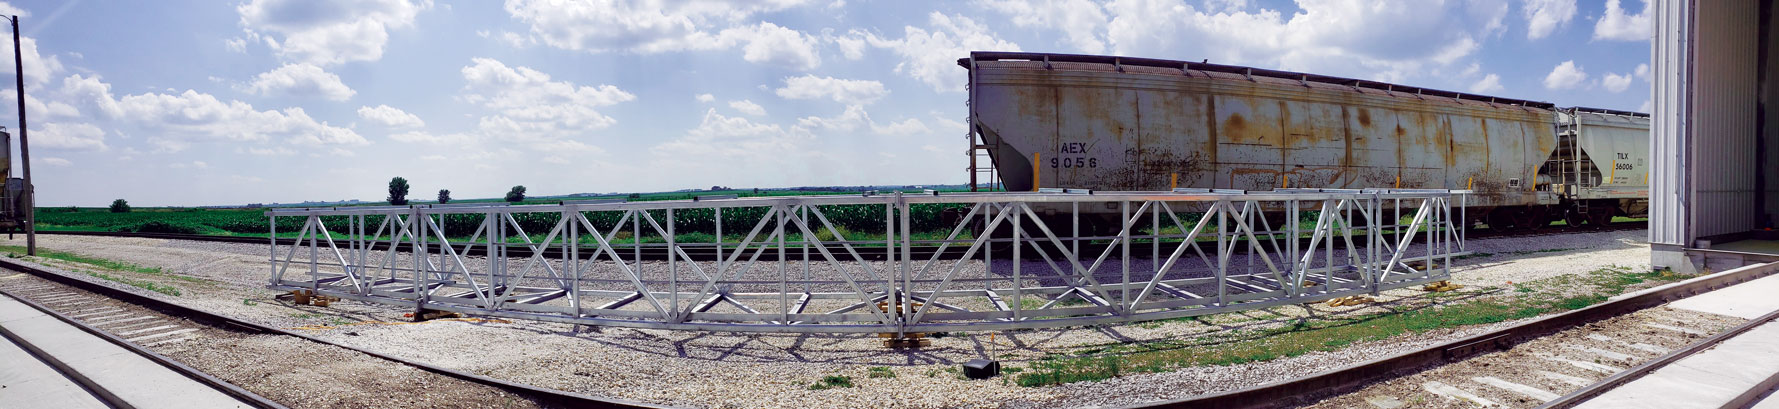 <b>This panoramic image shows a bridge section prior to installation at the Iowa Corn Processors plant in Glidden, Iowa, where Carl A. Nelson & Company is the construction manager at-risk for a rail loadout sifting project.</b> (CANCO photo by Chris Clark)